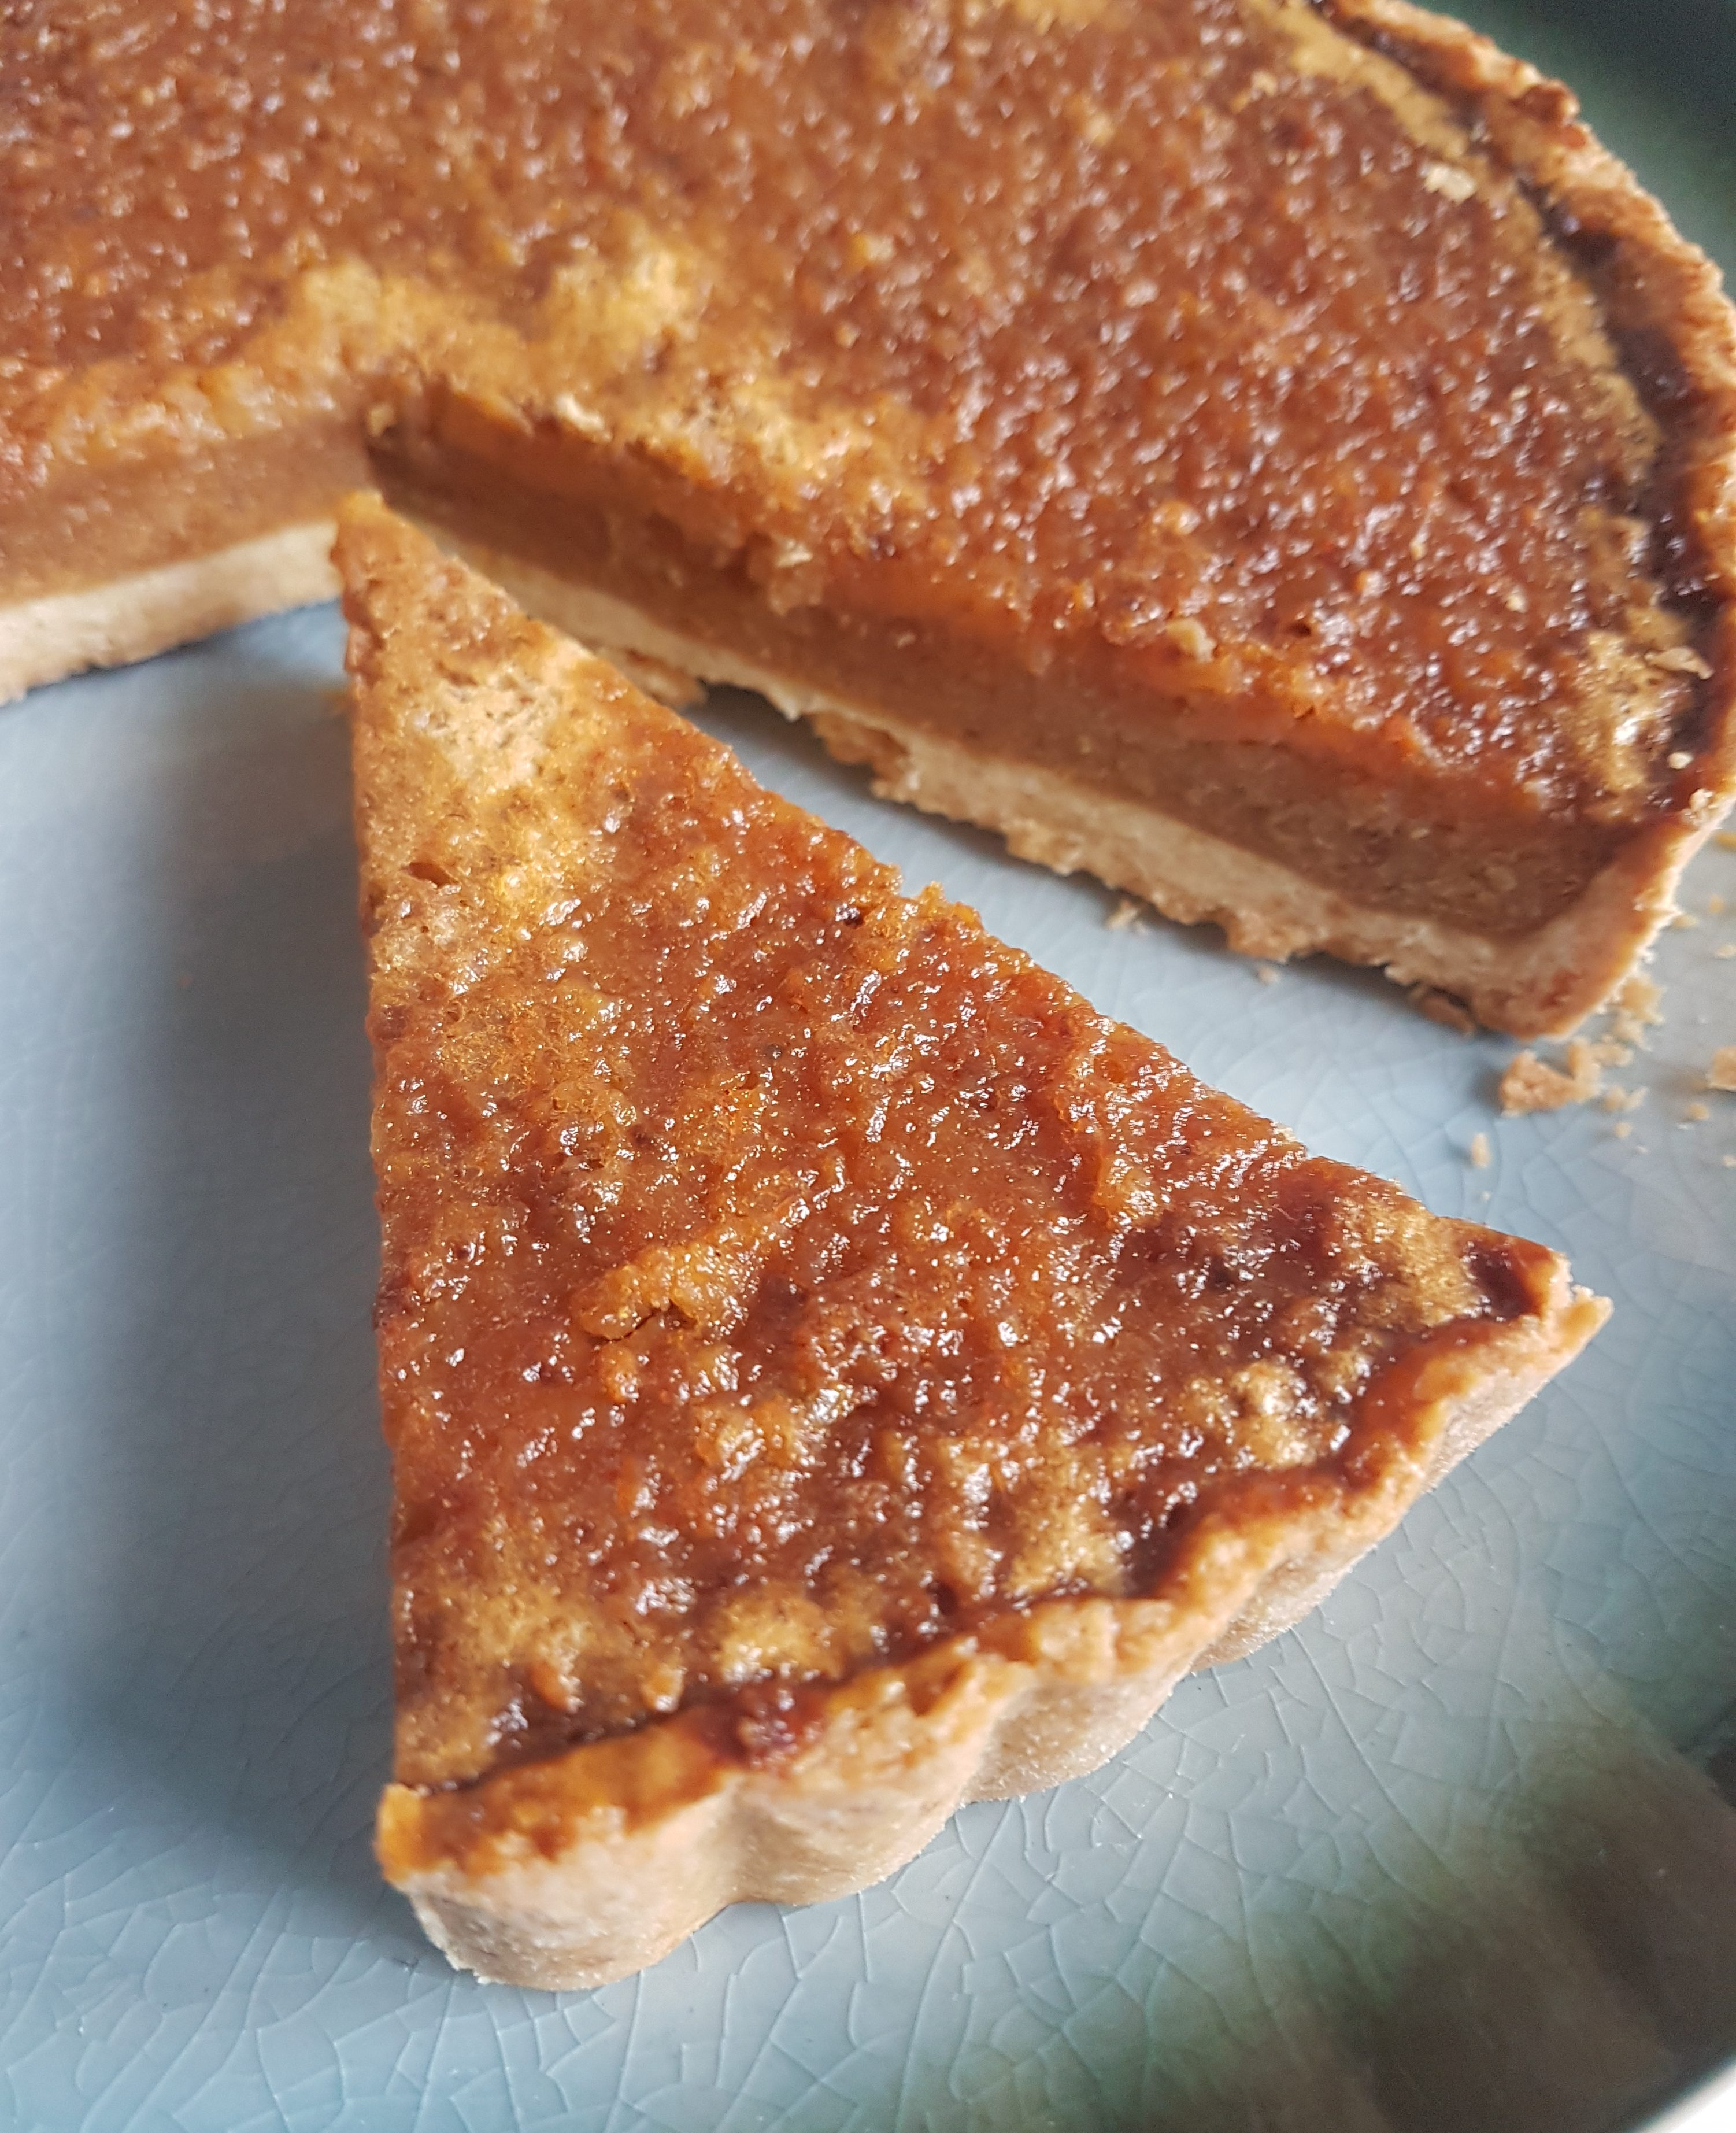 Salted Caramel Treacle Tart Gf My Gluten Free Guide